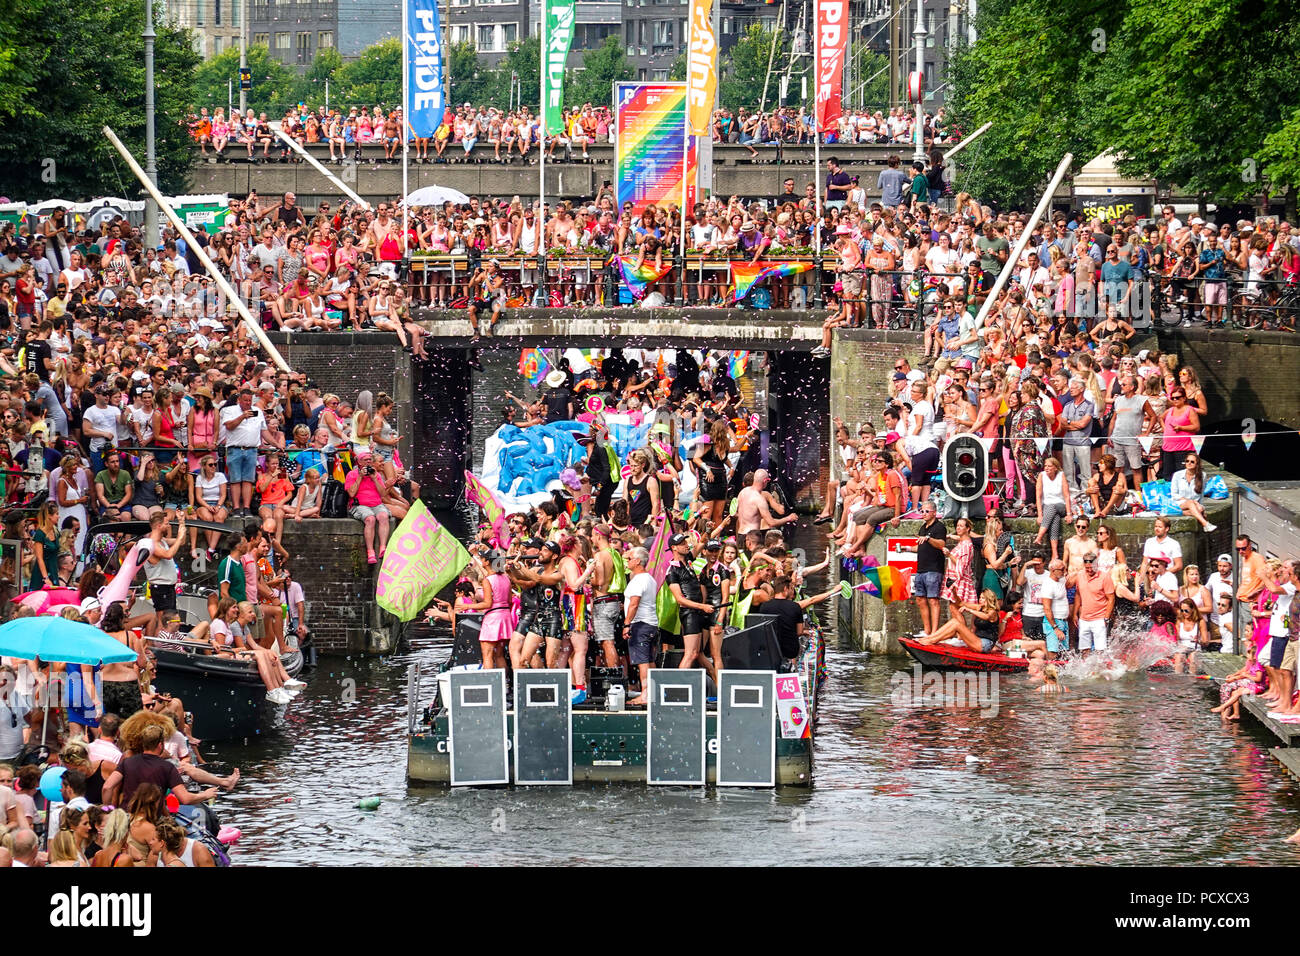 https://c7.alamy.com/comp/PCXCX3/amsterdam-netherlands-august-4-2018-hundreds-of-thousands-of-visitors-lined-the-canals-for-the-annual-canal-pride-credit-wiskerkealamy-live-news-PCXCX3.jpg